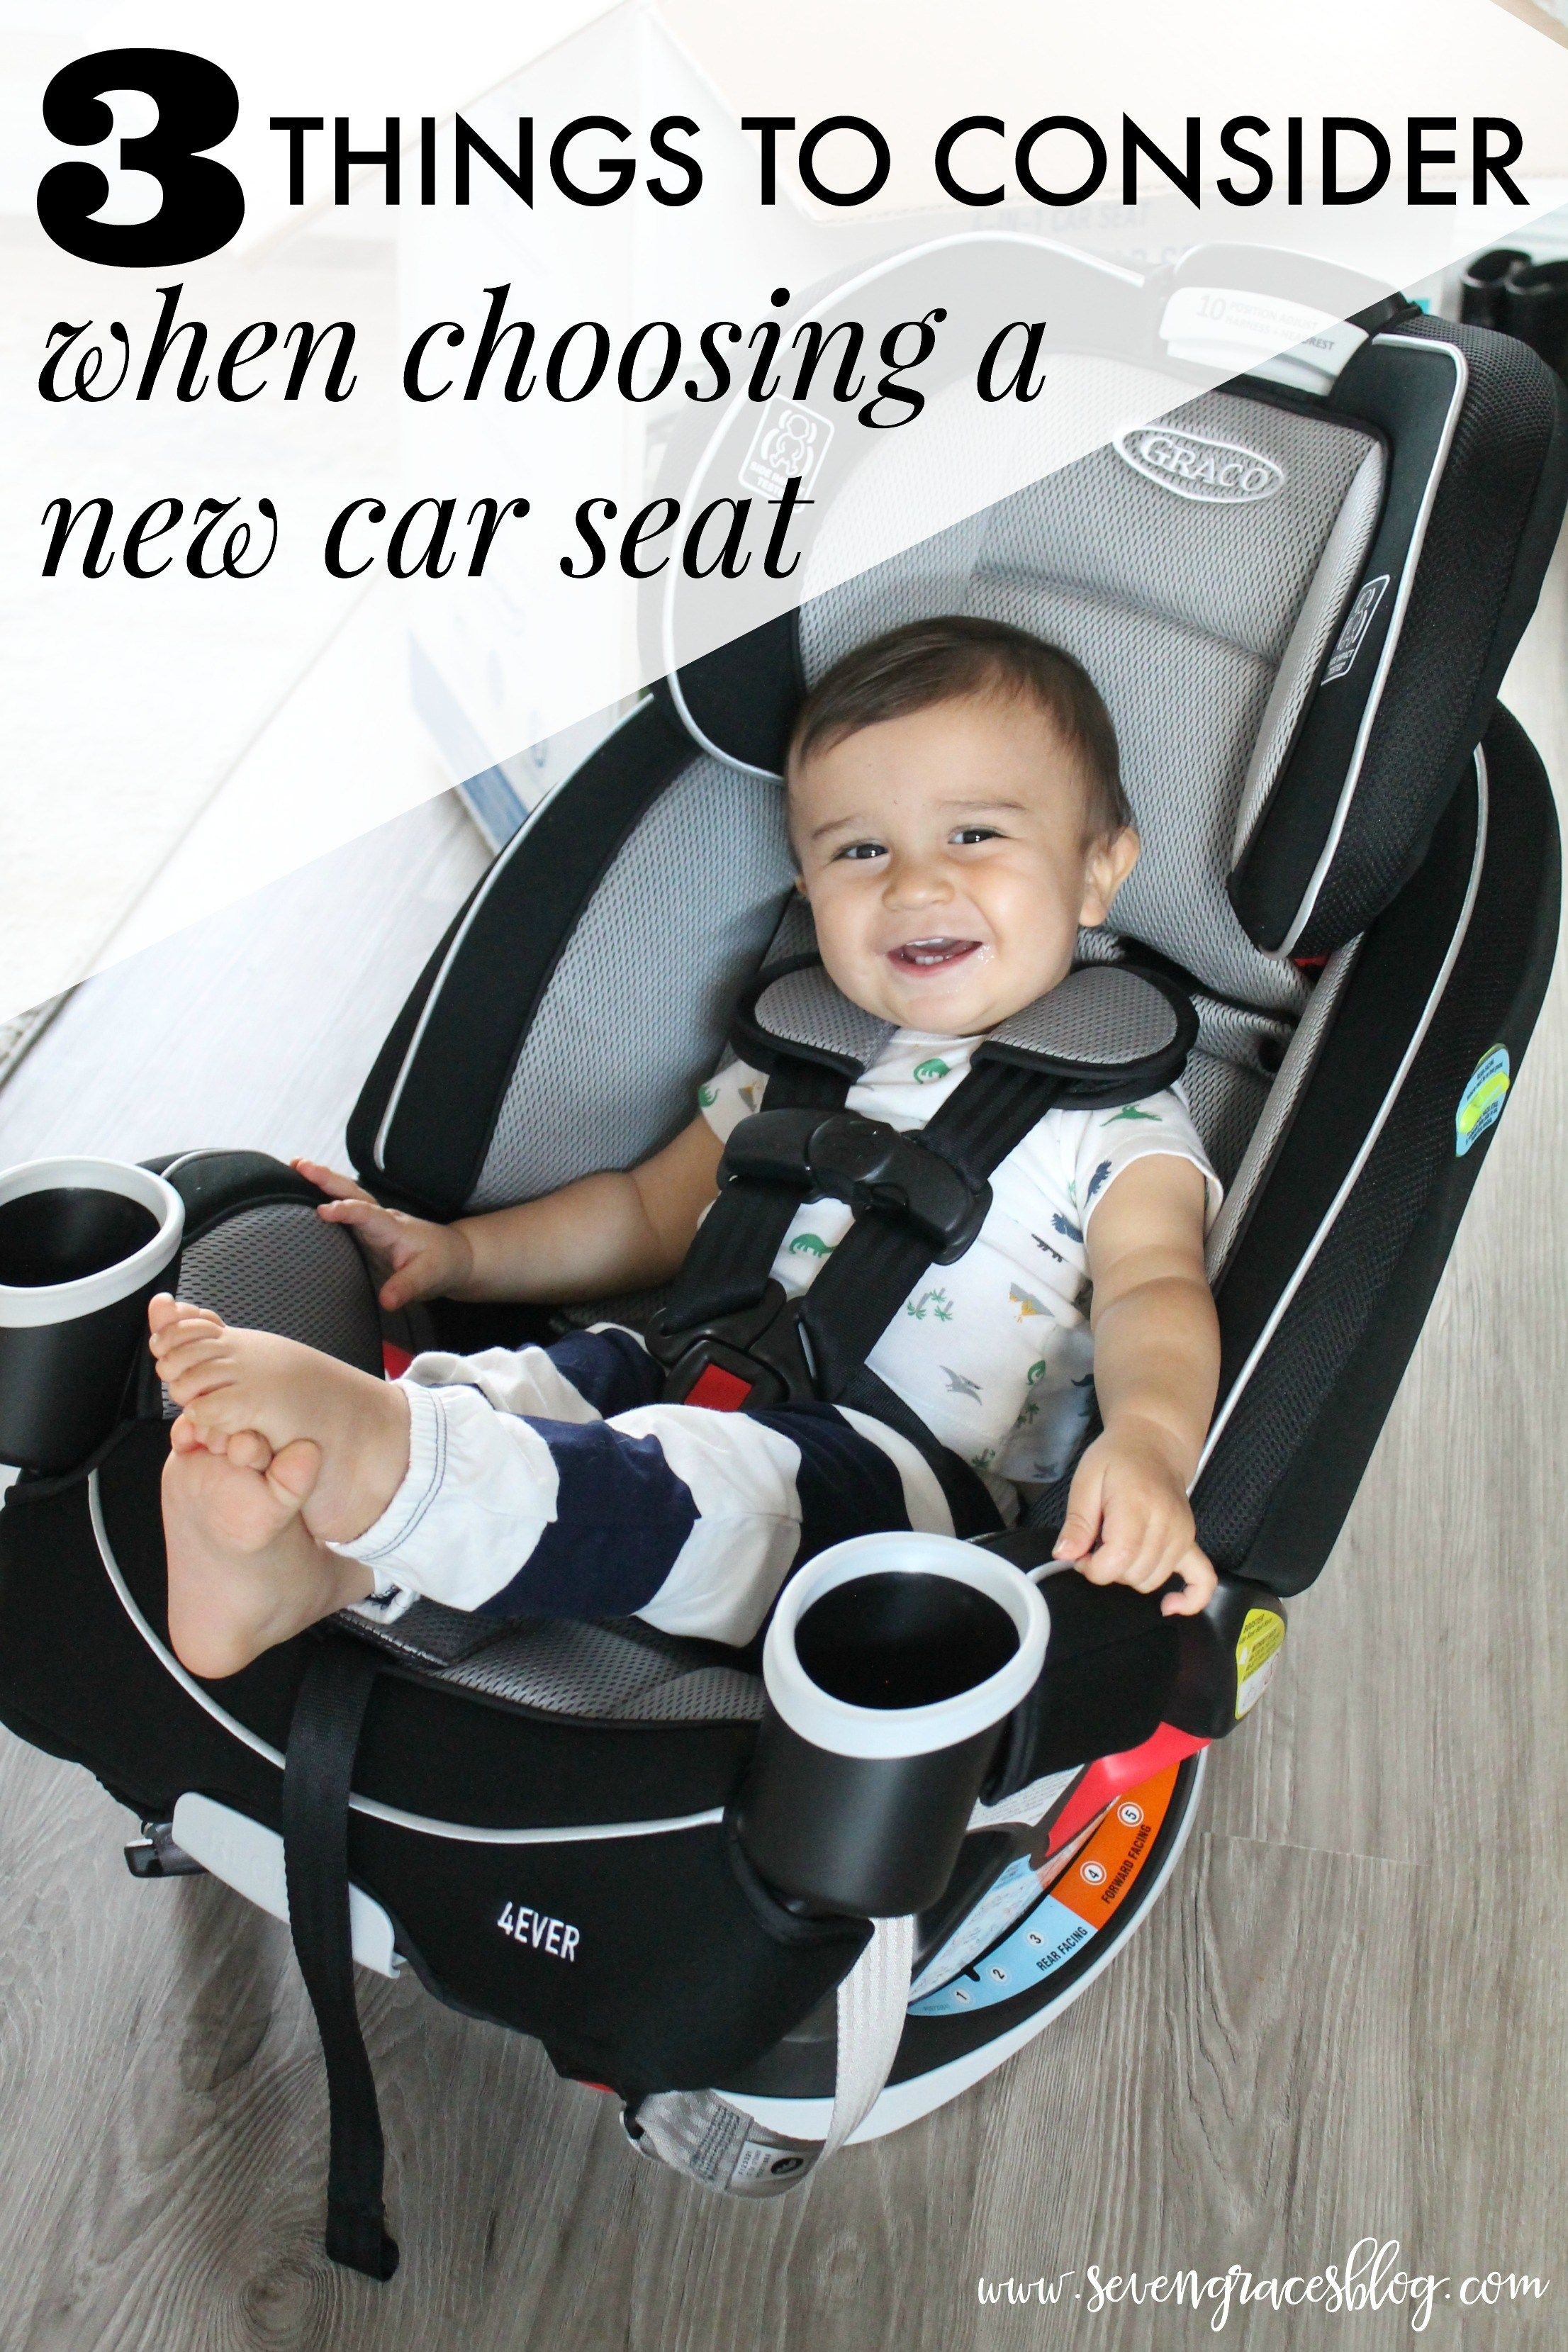 What To Look For When Choosing A New Car Seat Three Reasons Why We Went With The Graco 4ever All In 1 Quality Safety Affordability